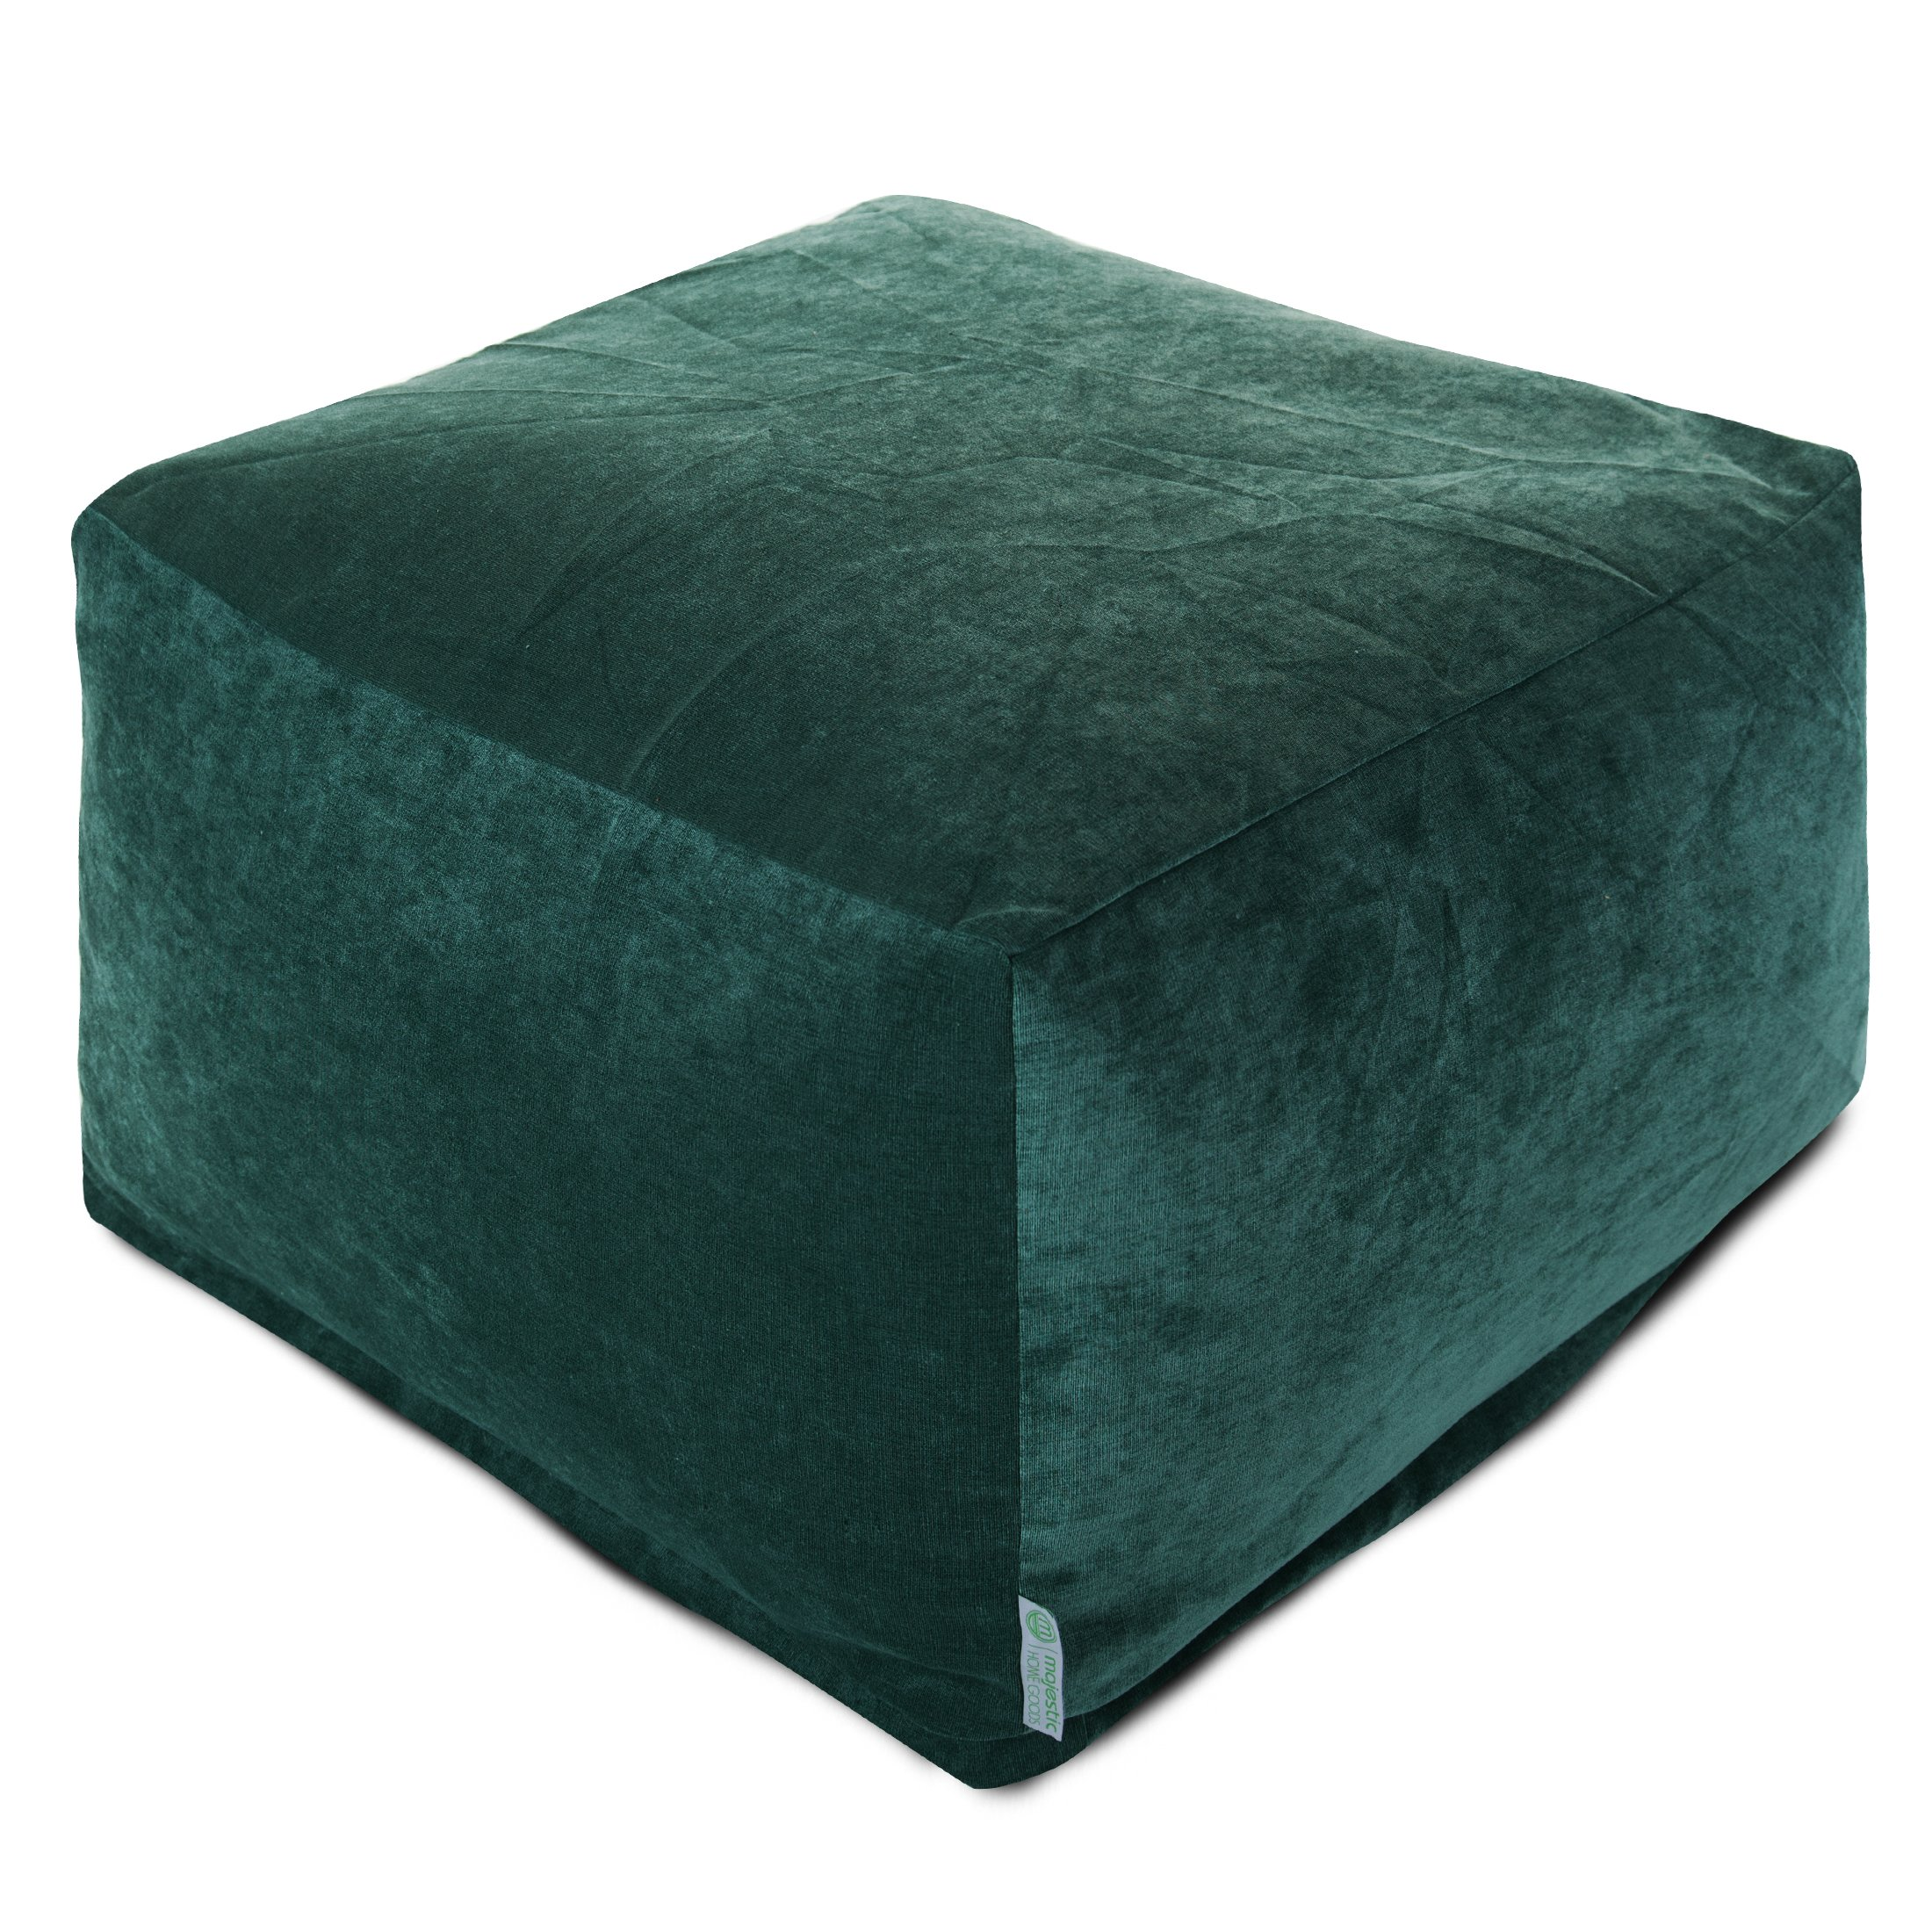 Majestic Home Goods Villa Marine Large Ottoman